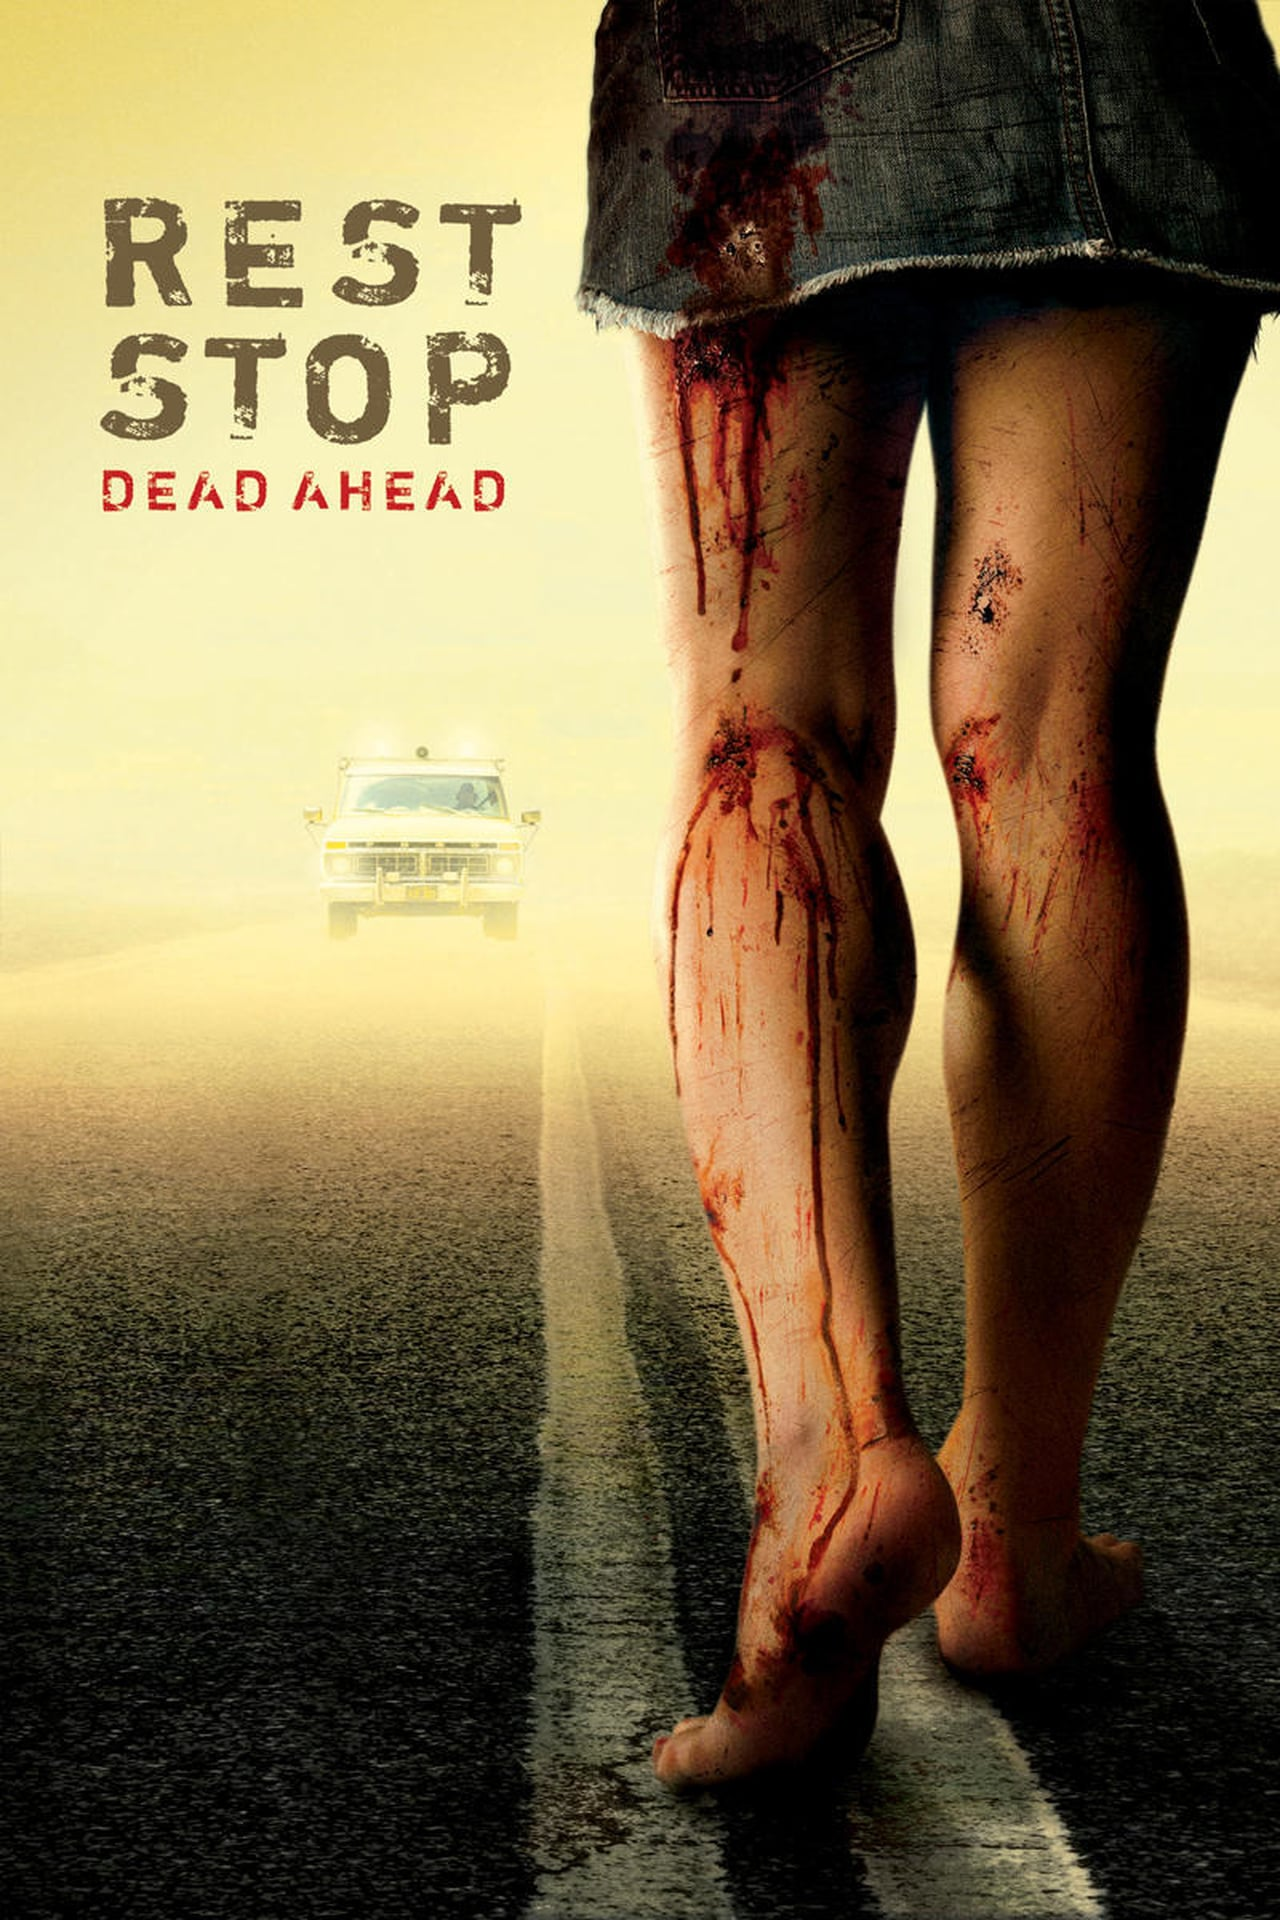 Rest Stop Dead Ahead (2006)